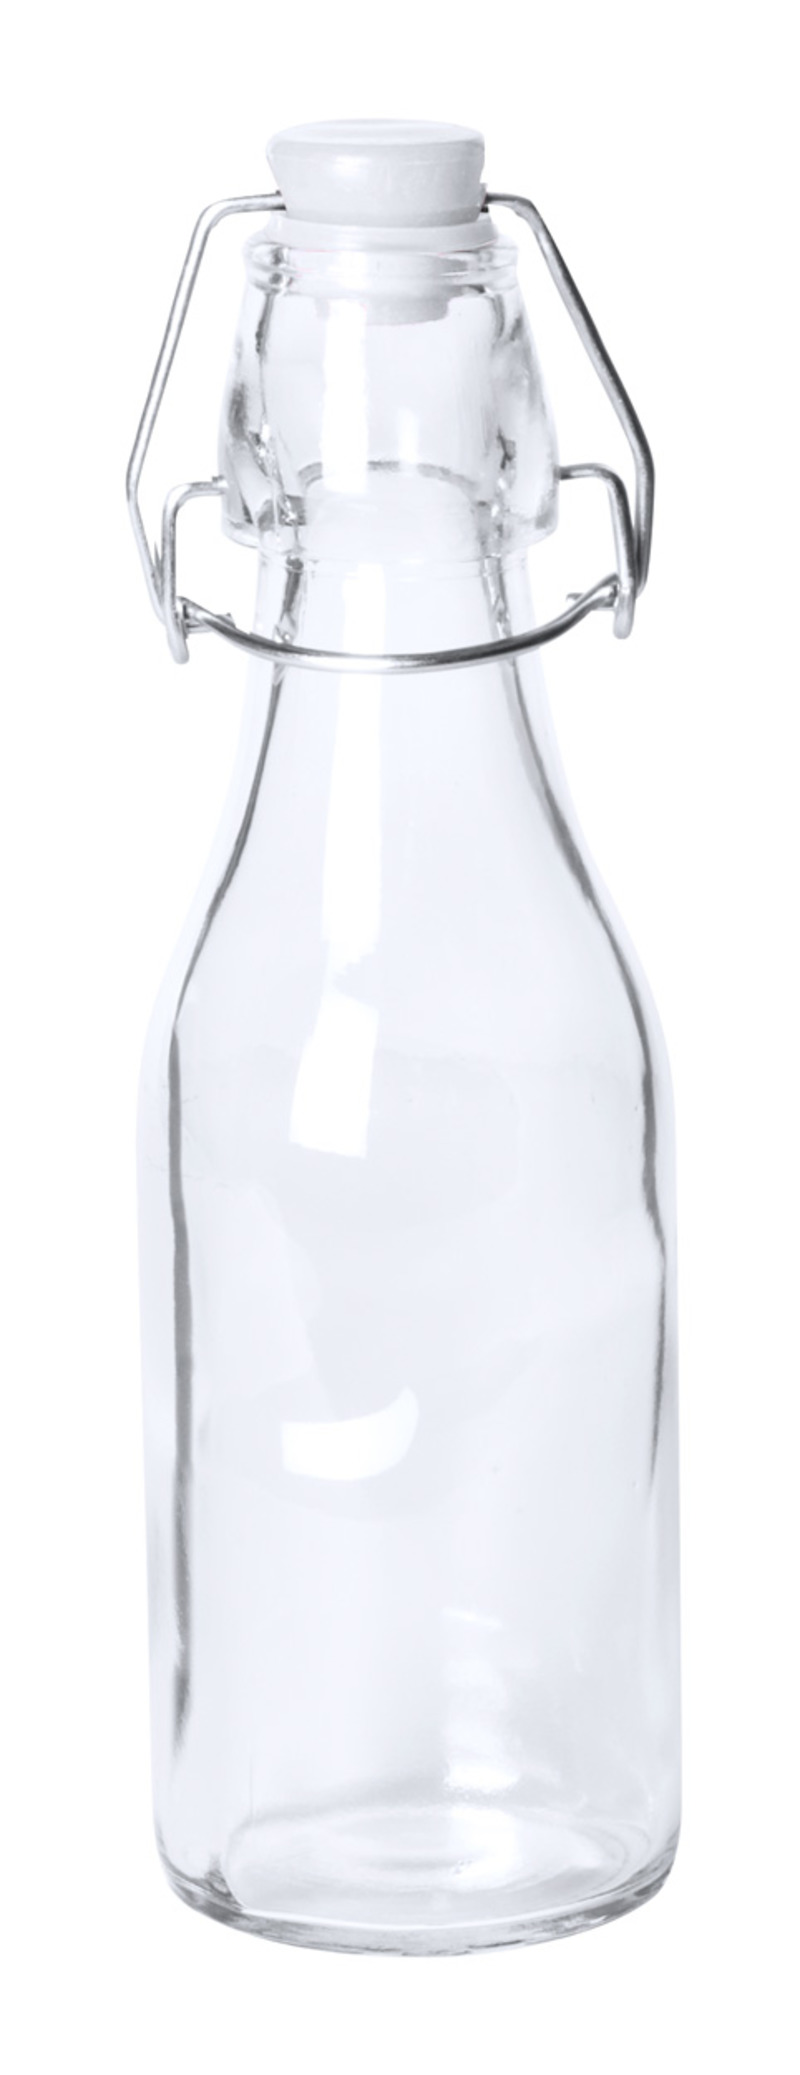 Haser bottle